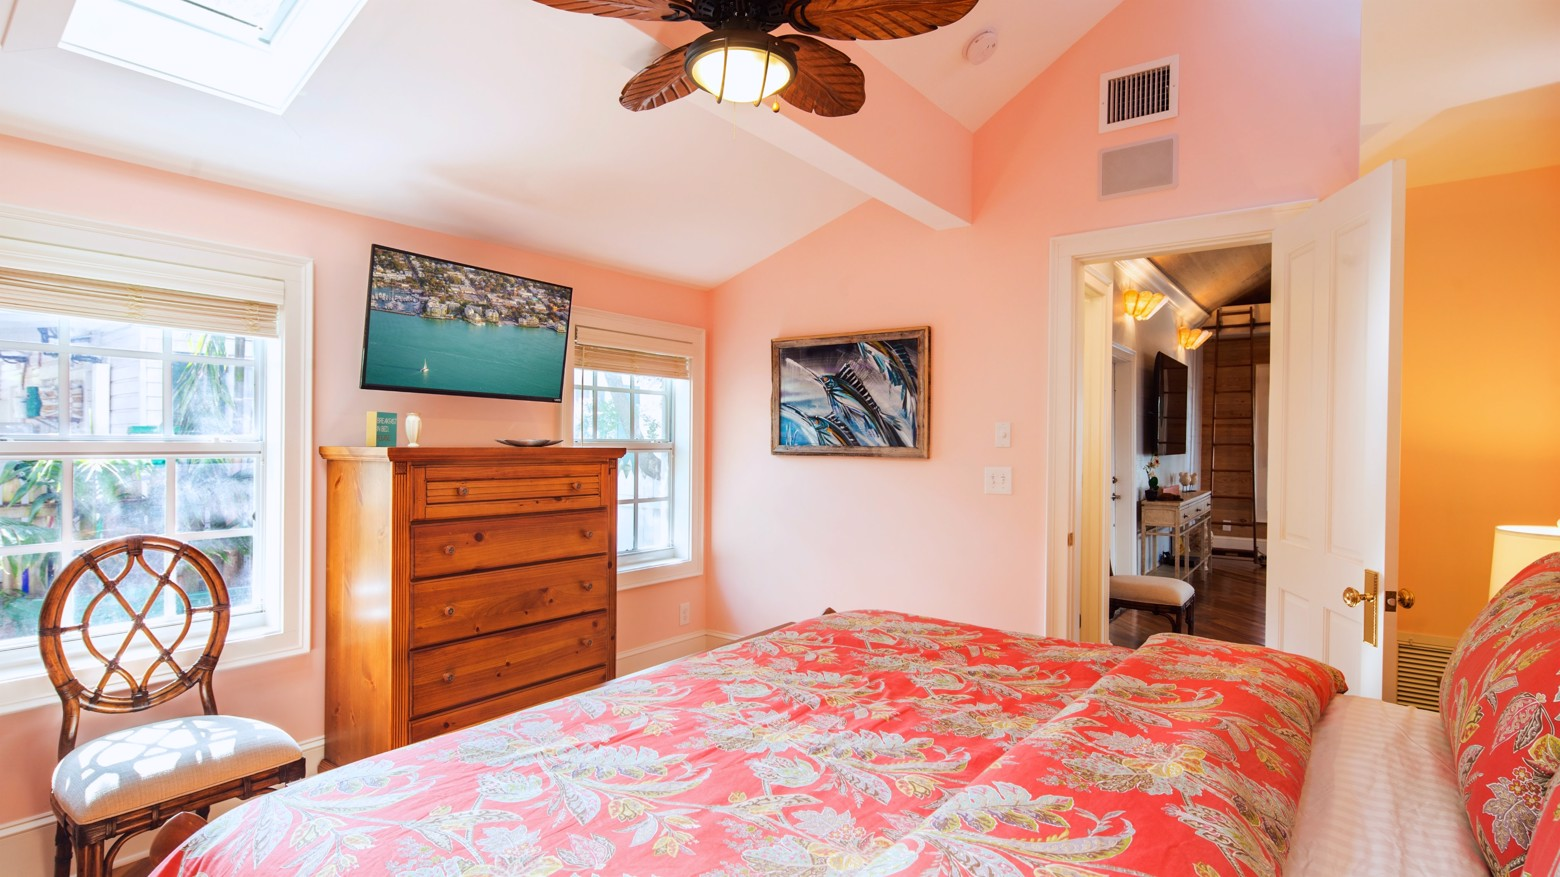 18-733LOVELANE-16x9-downstairsmasterbedroom.jpg image